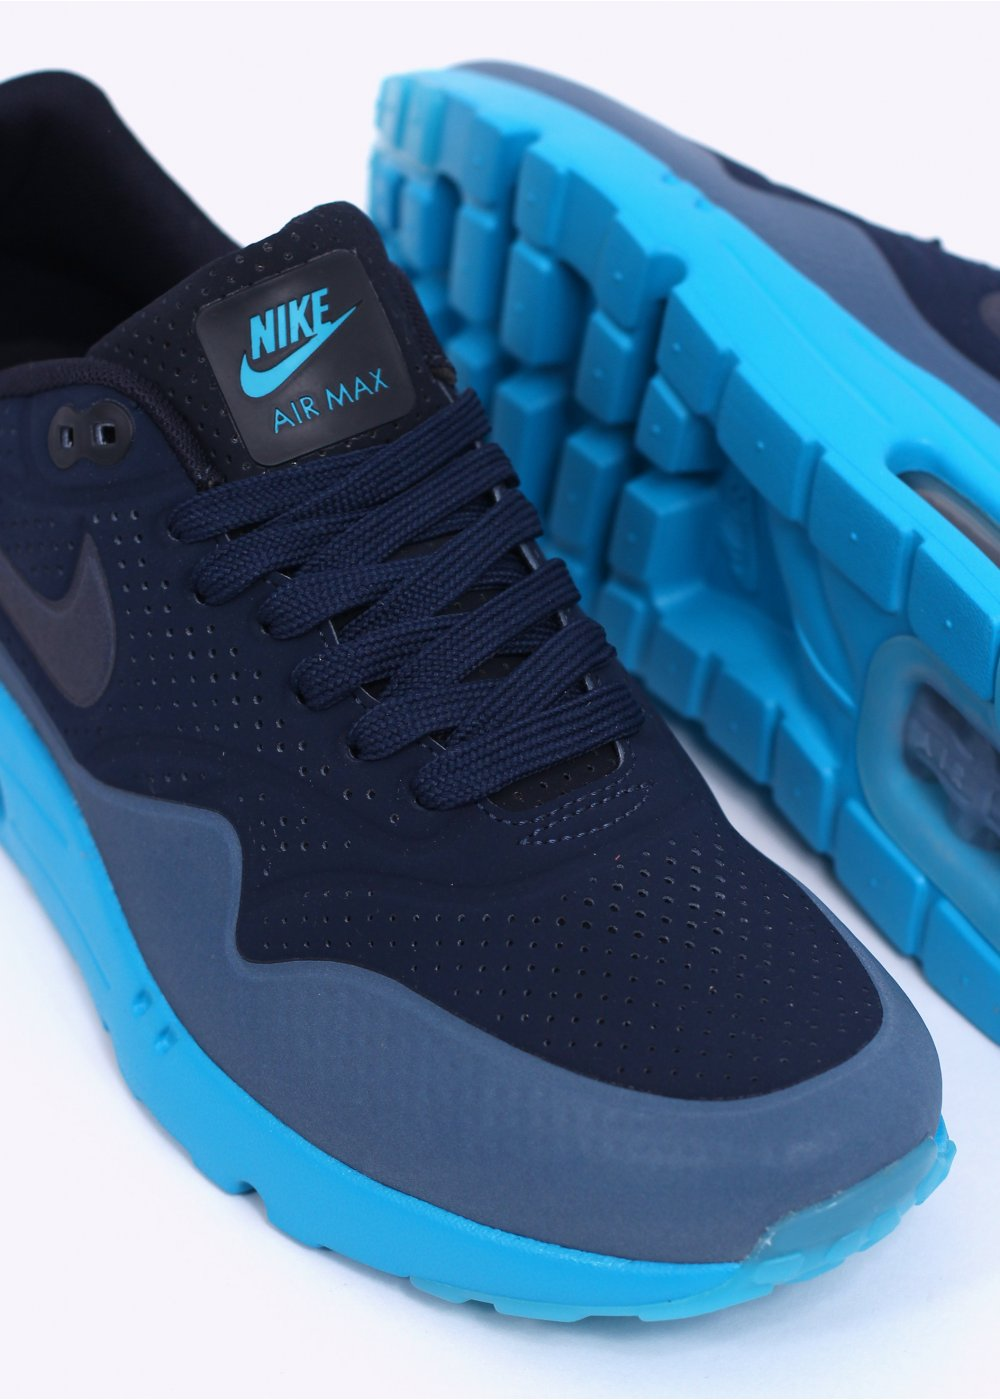 best service 29dac d7f09 Nike Air Max 1 Ultra Moire Trainers - Midnight Navy / Obsidian